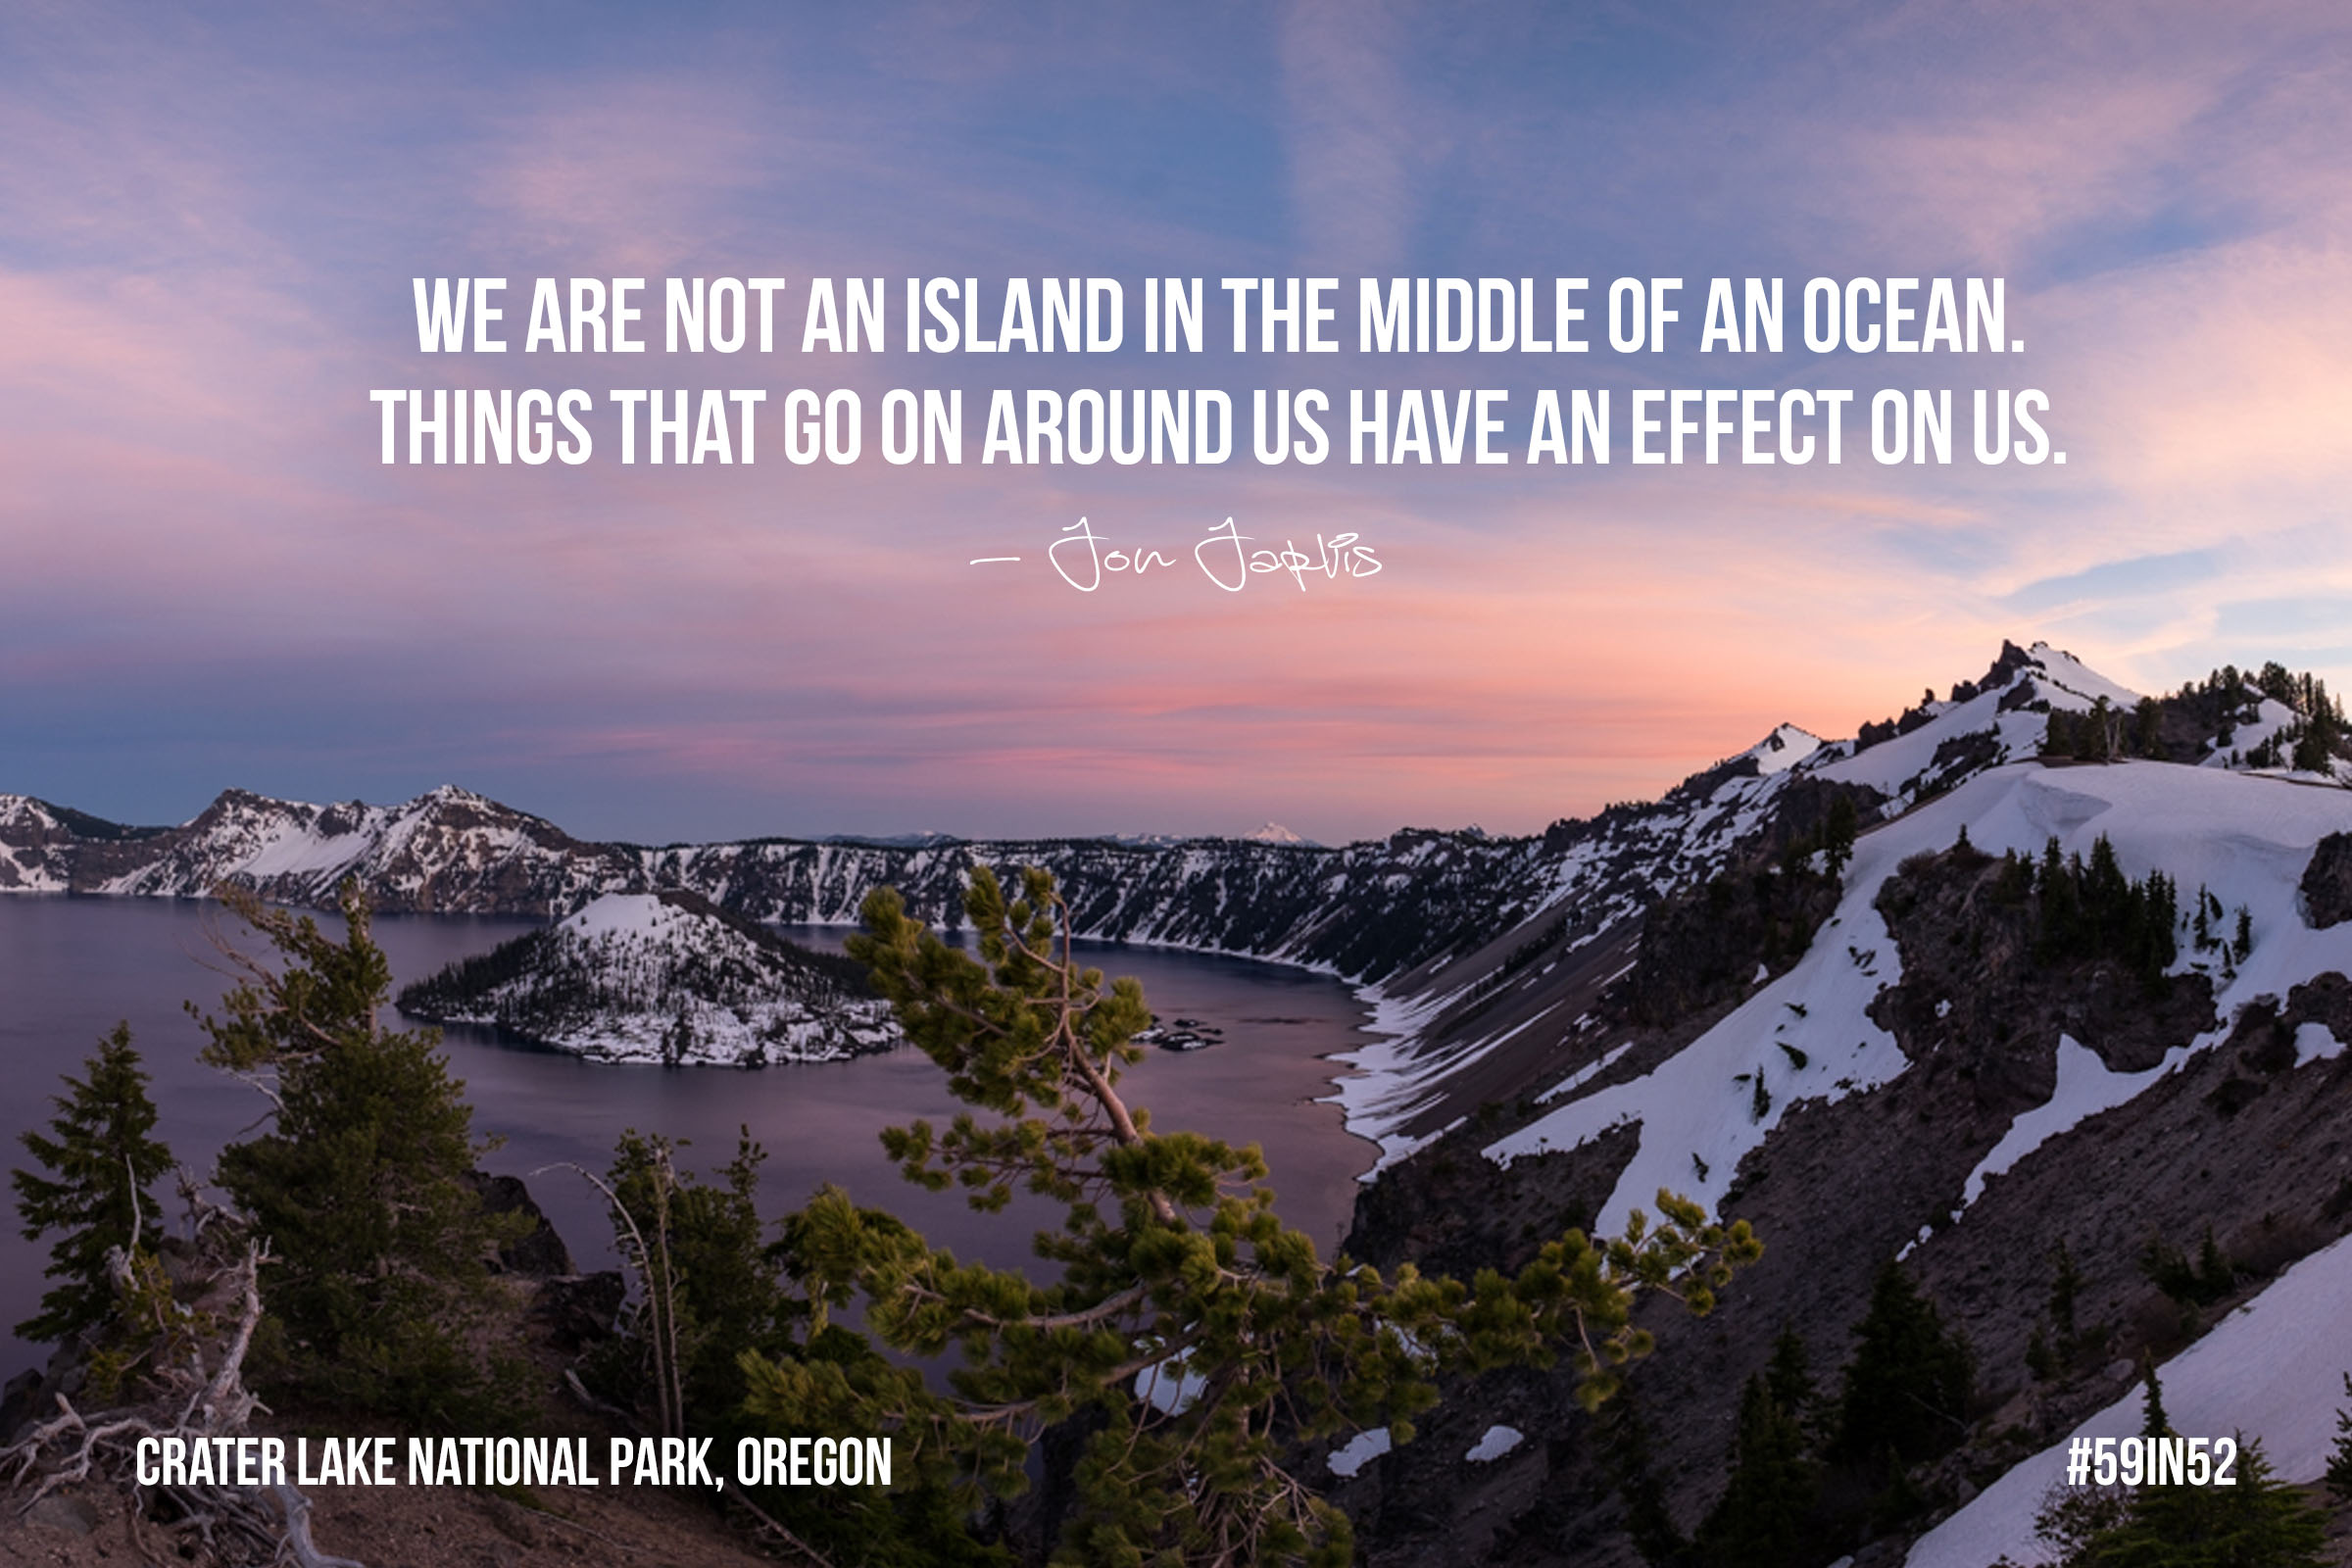 """""""We are not an island in the middle of the ocean. Things that go on around us have an effect on us."""" Jon Jarvis"""